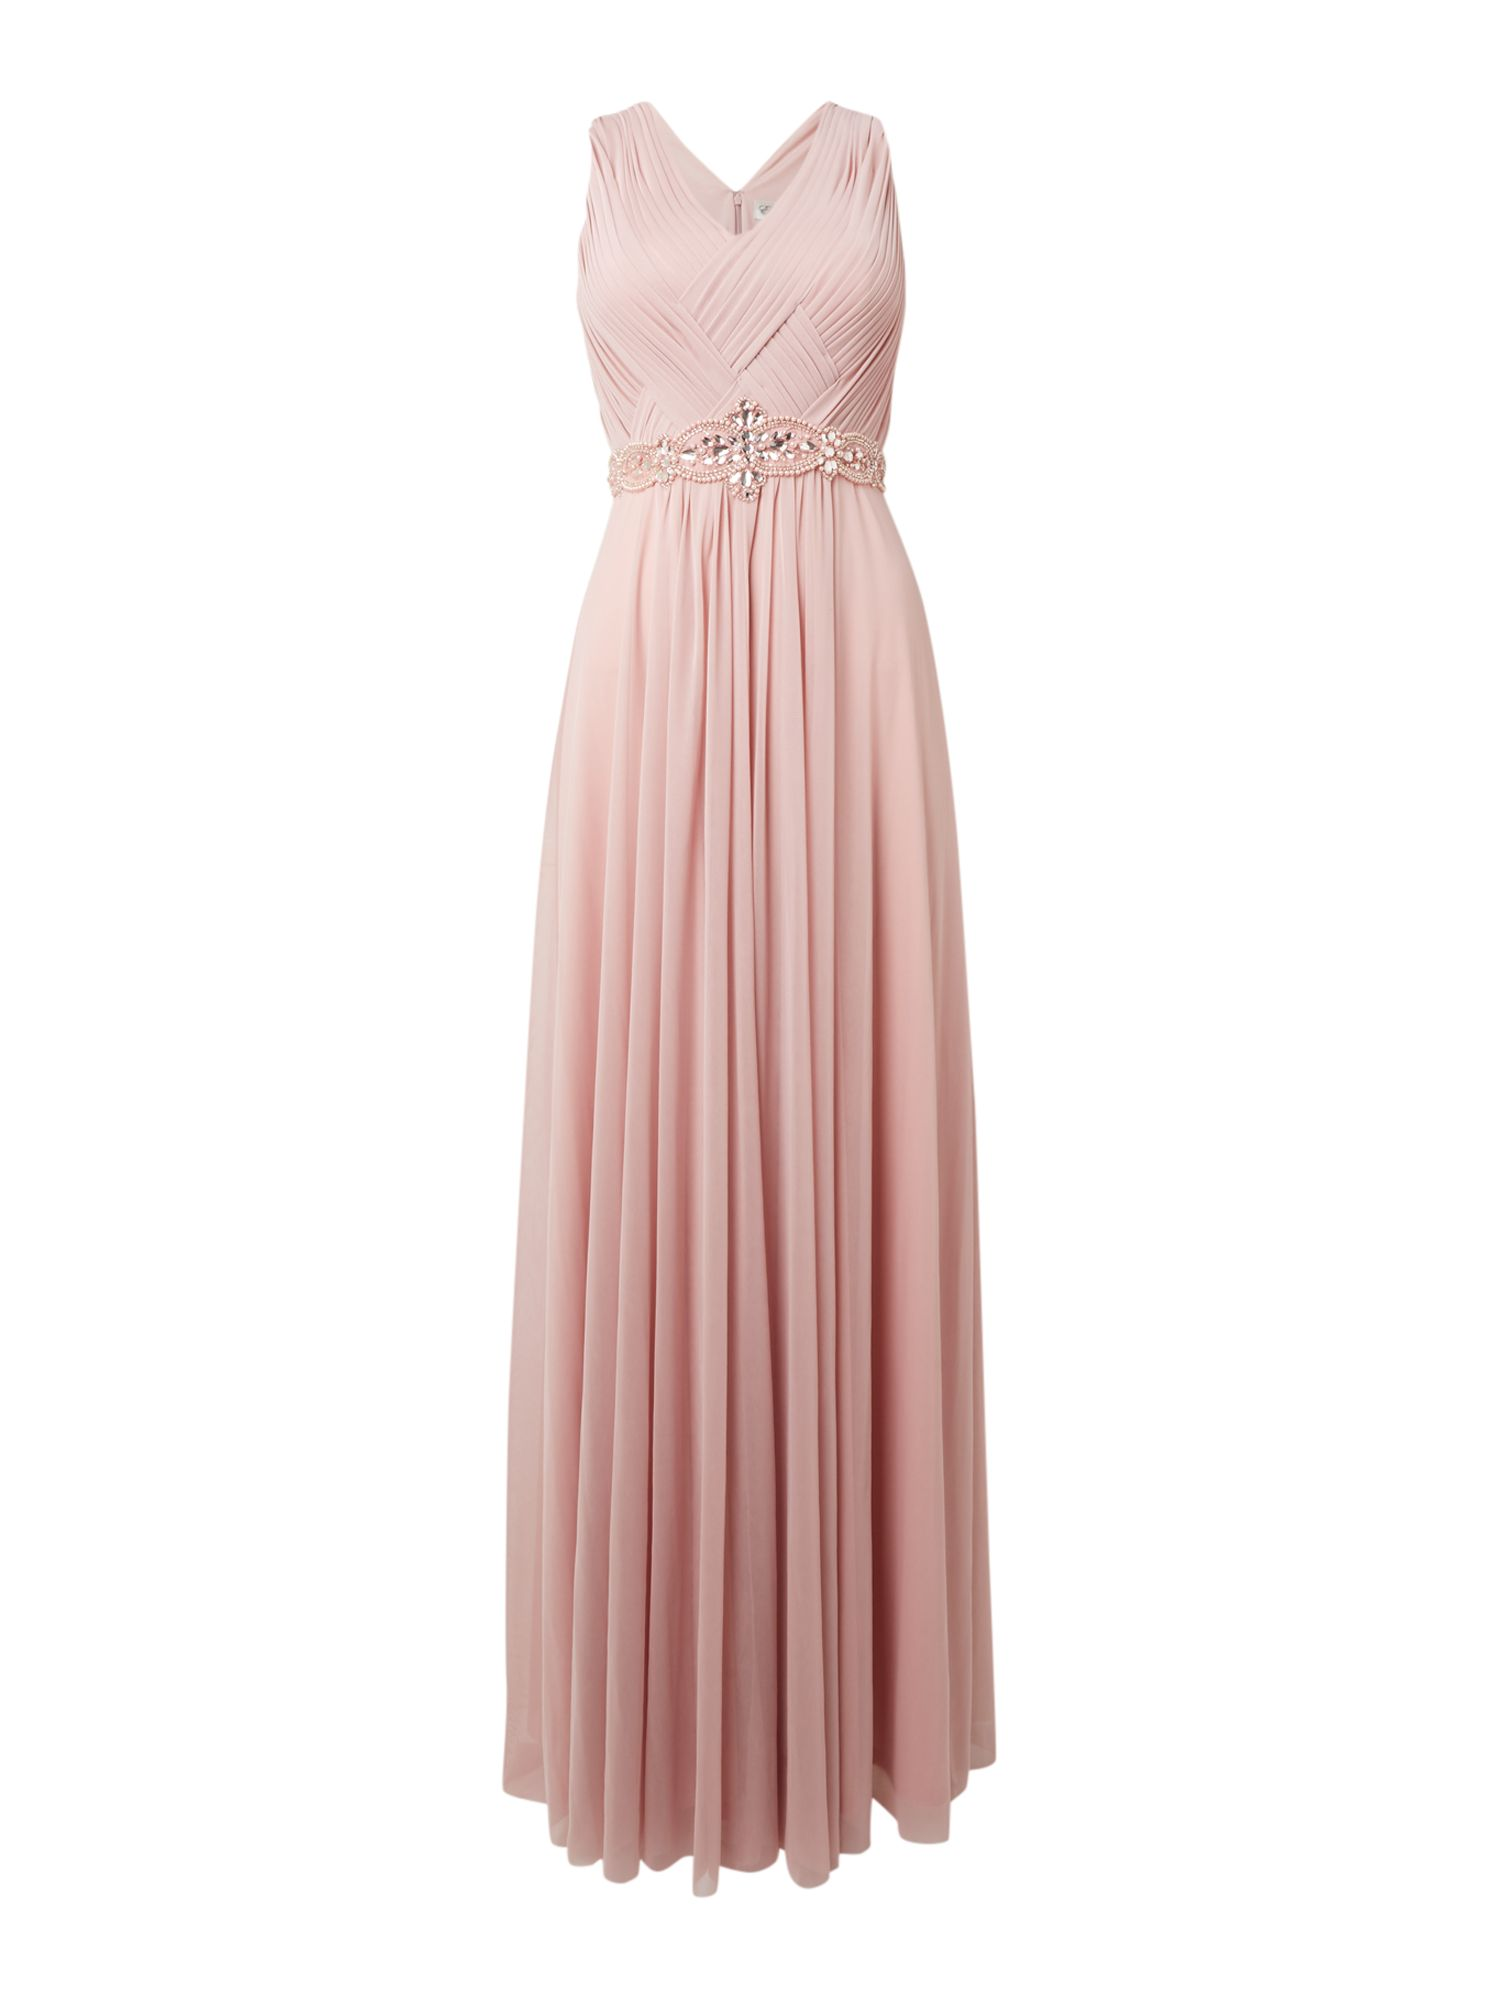 Best 1920s Prom Dresses – Great Gatsby Style Gowns Eliza J Sleeveless dress with beaded detail Rose £128.00 AT vintagedancer.com